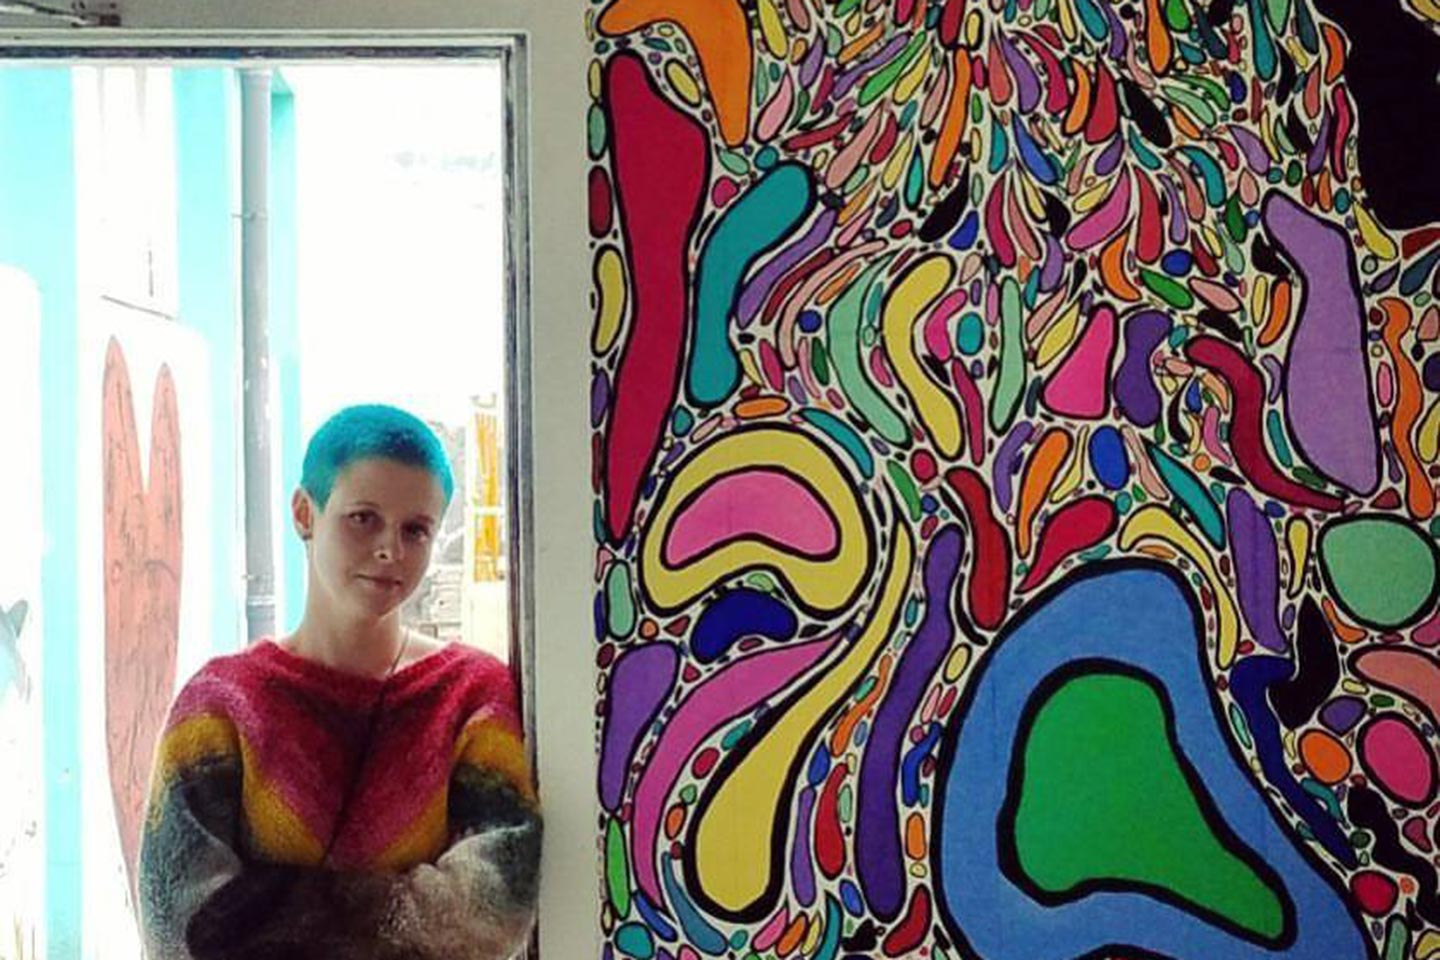 Chelsea Criger standing in an open doorway next to a wall covered in her art work in Iceland